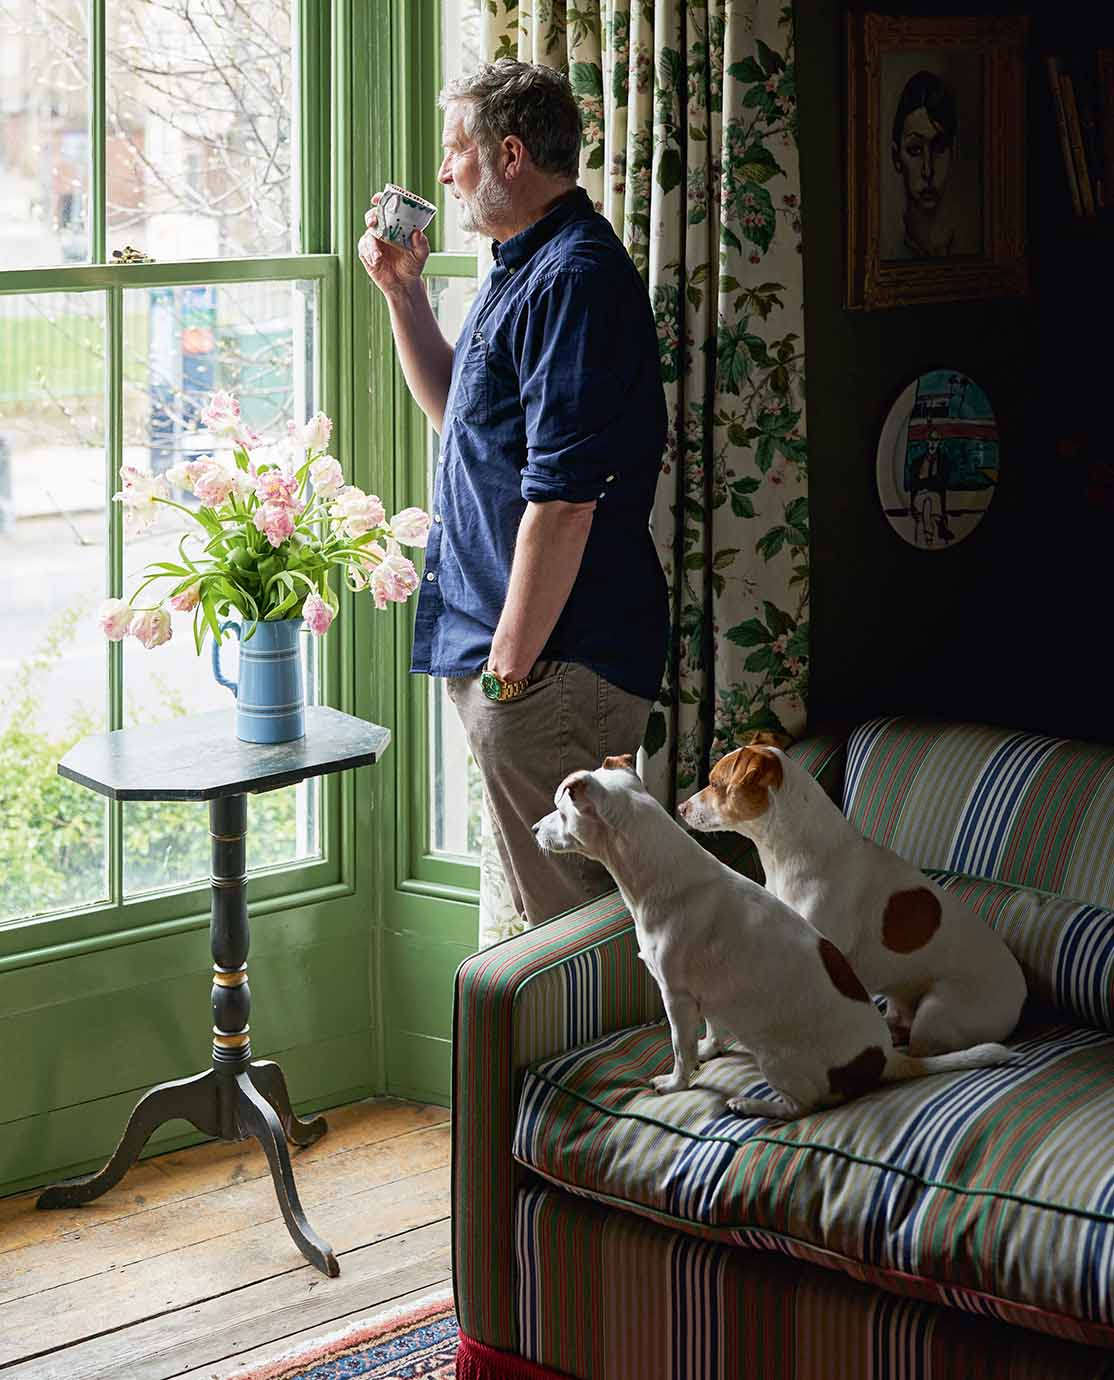 Gavin Houghton and his two Jack Russells looking out of a window